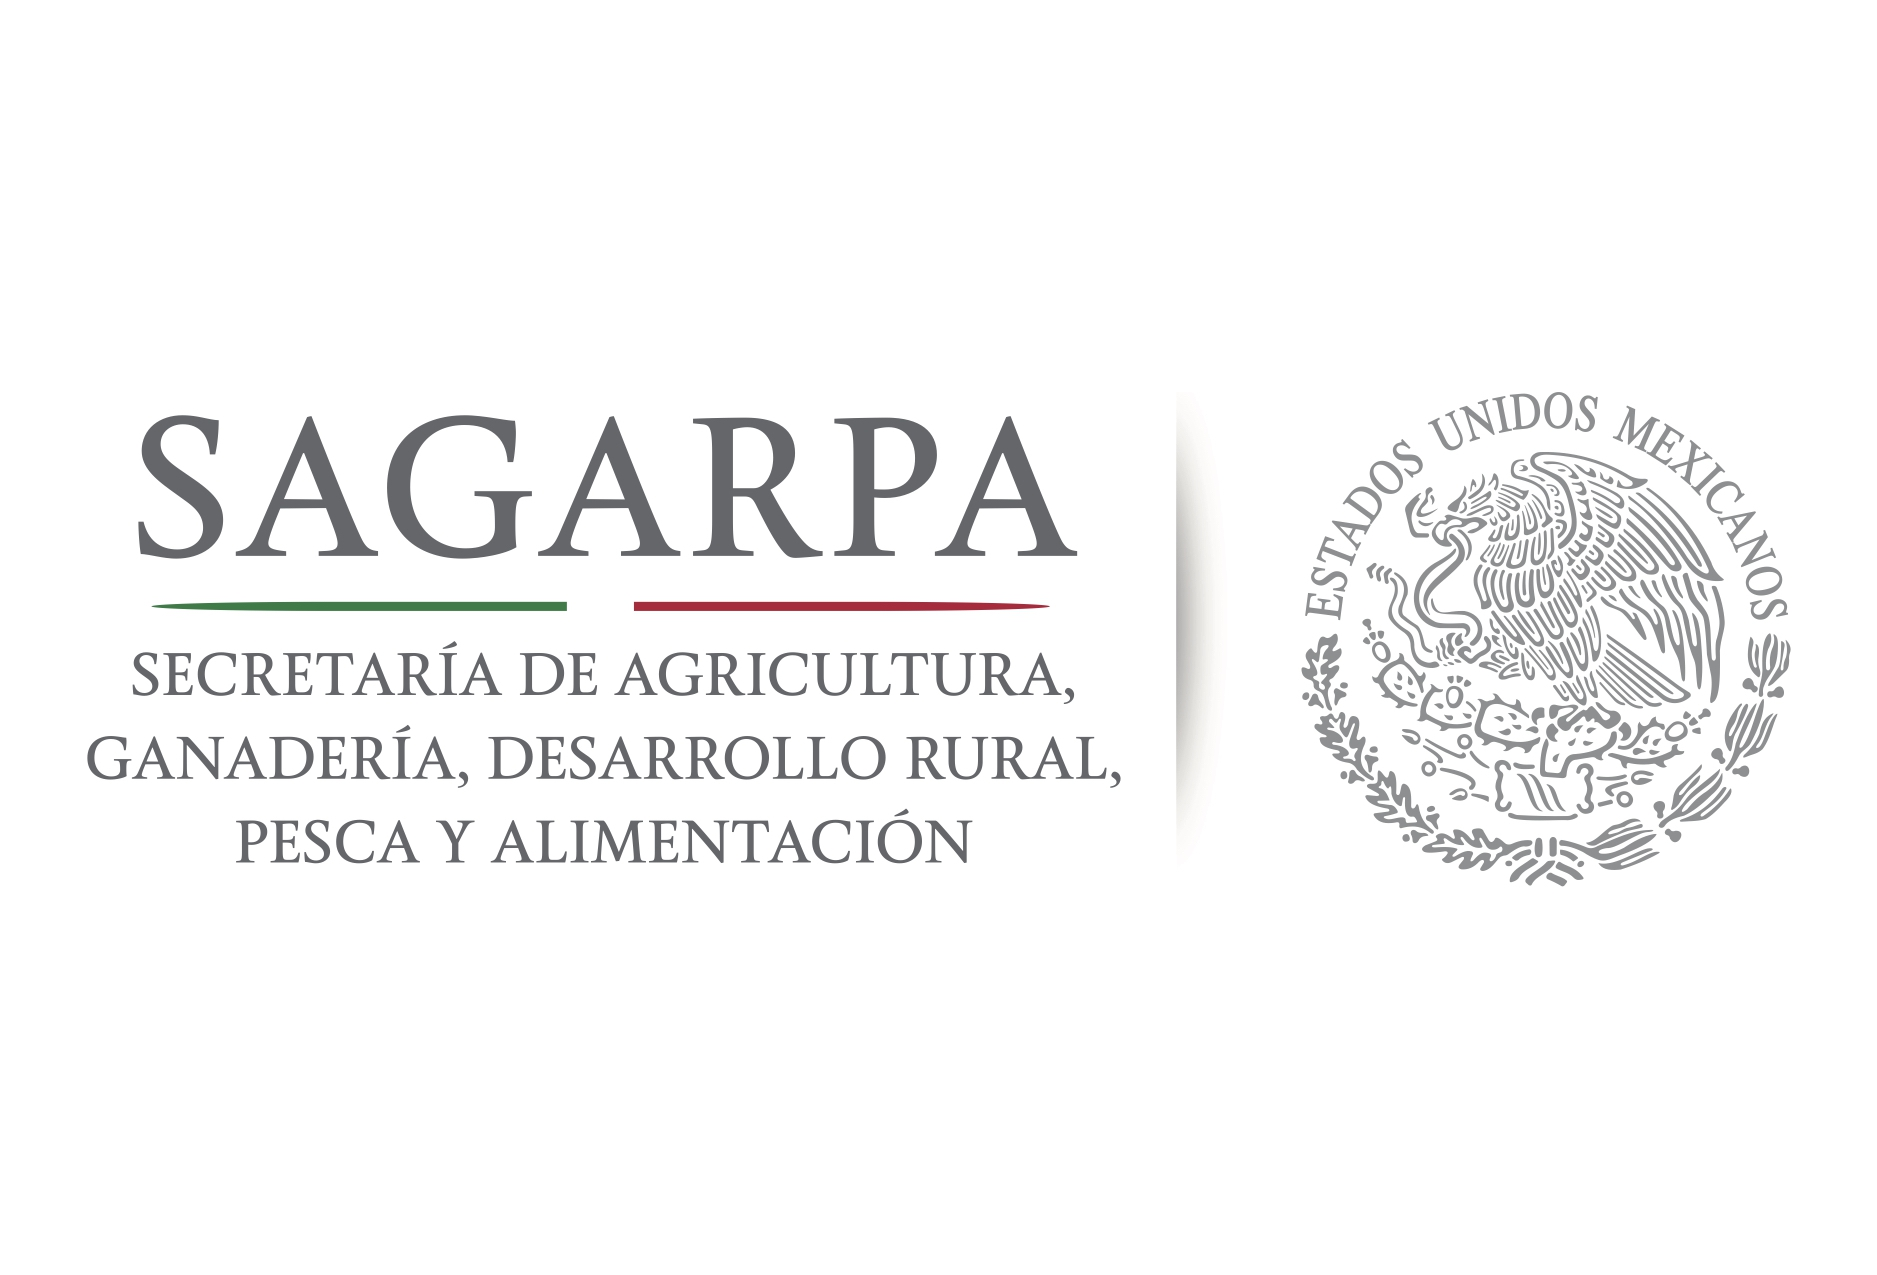 Mexico's Secretary of Agriculture, Livestock, Rural Development, Fisheries and Food (SAGARPA)